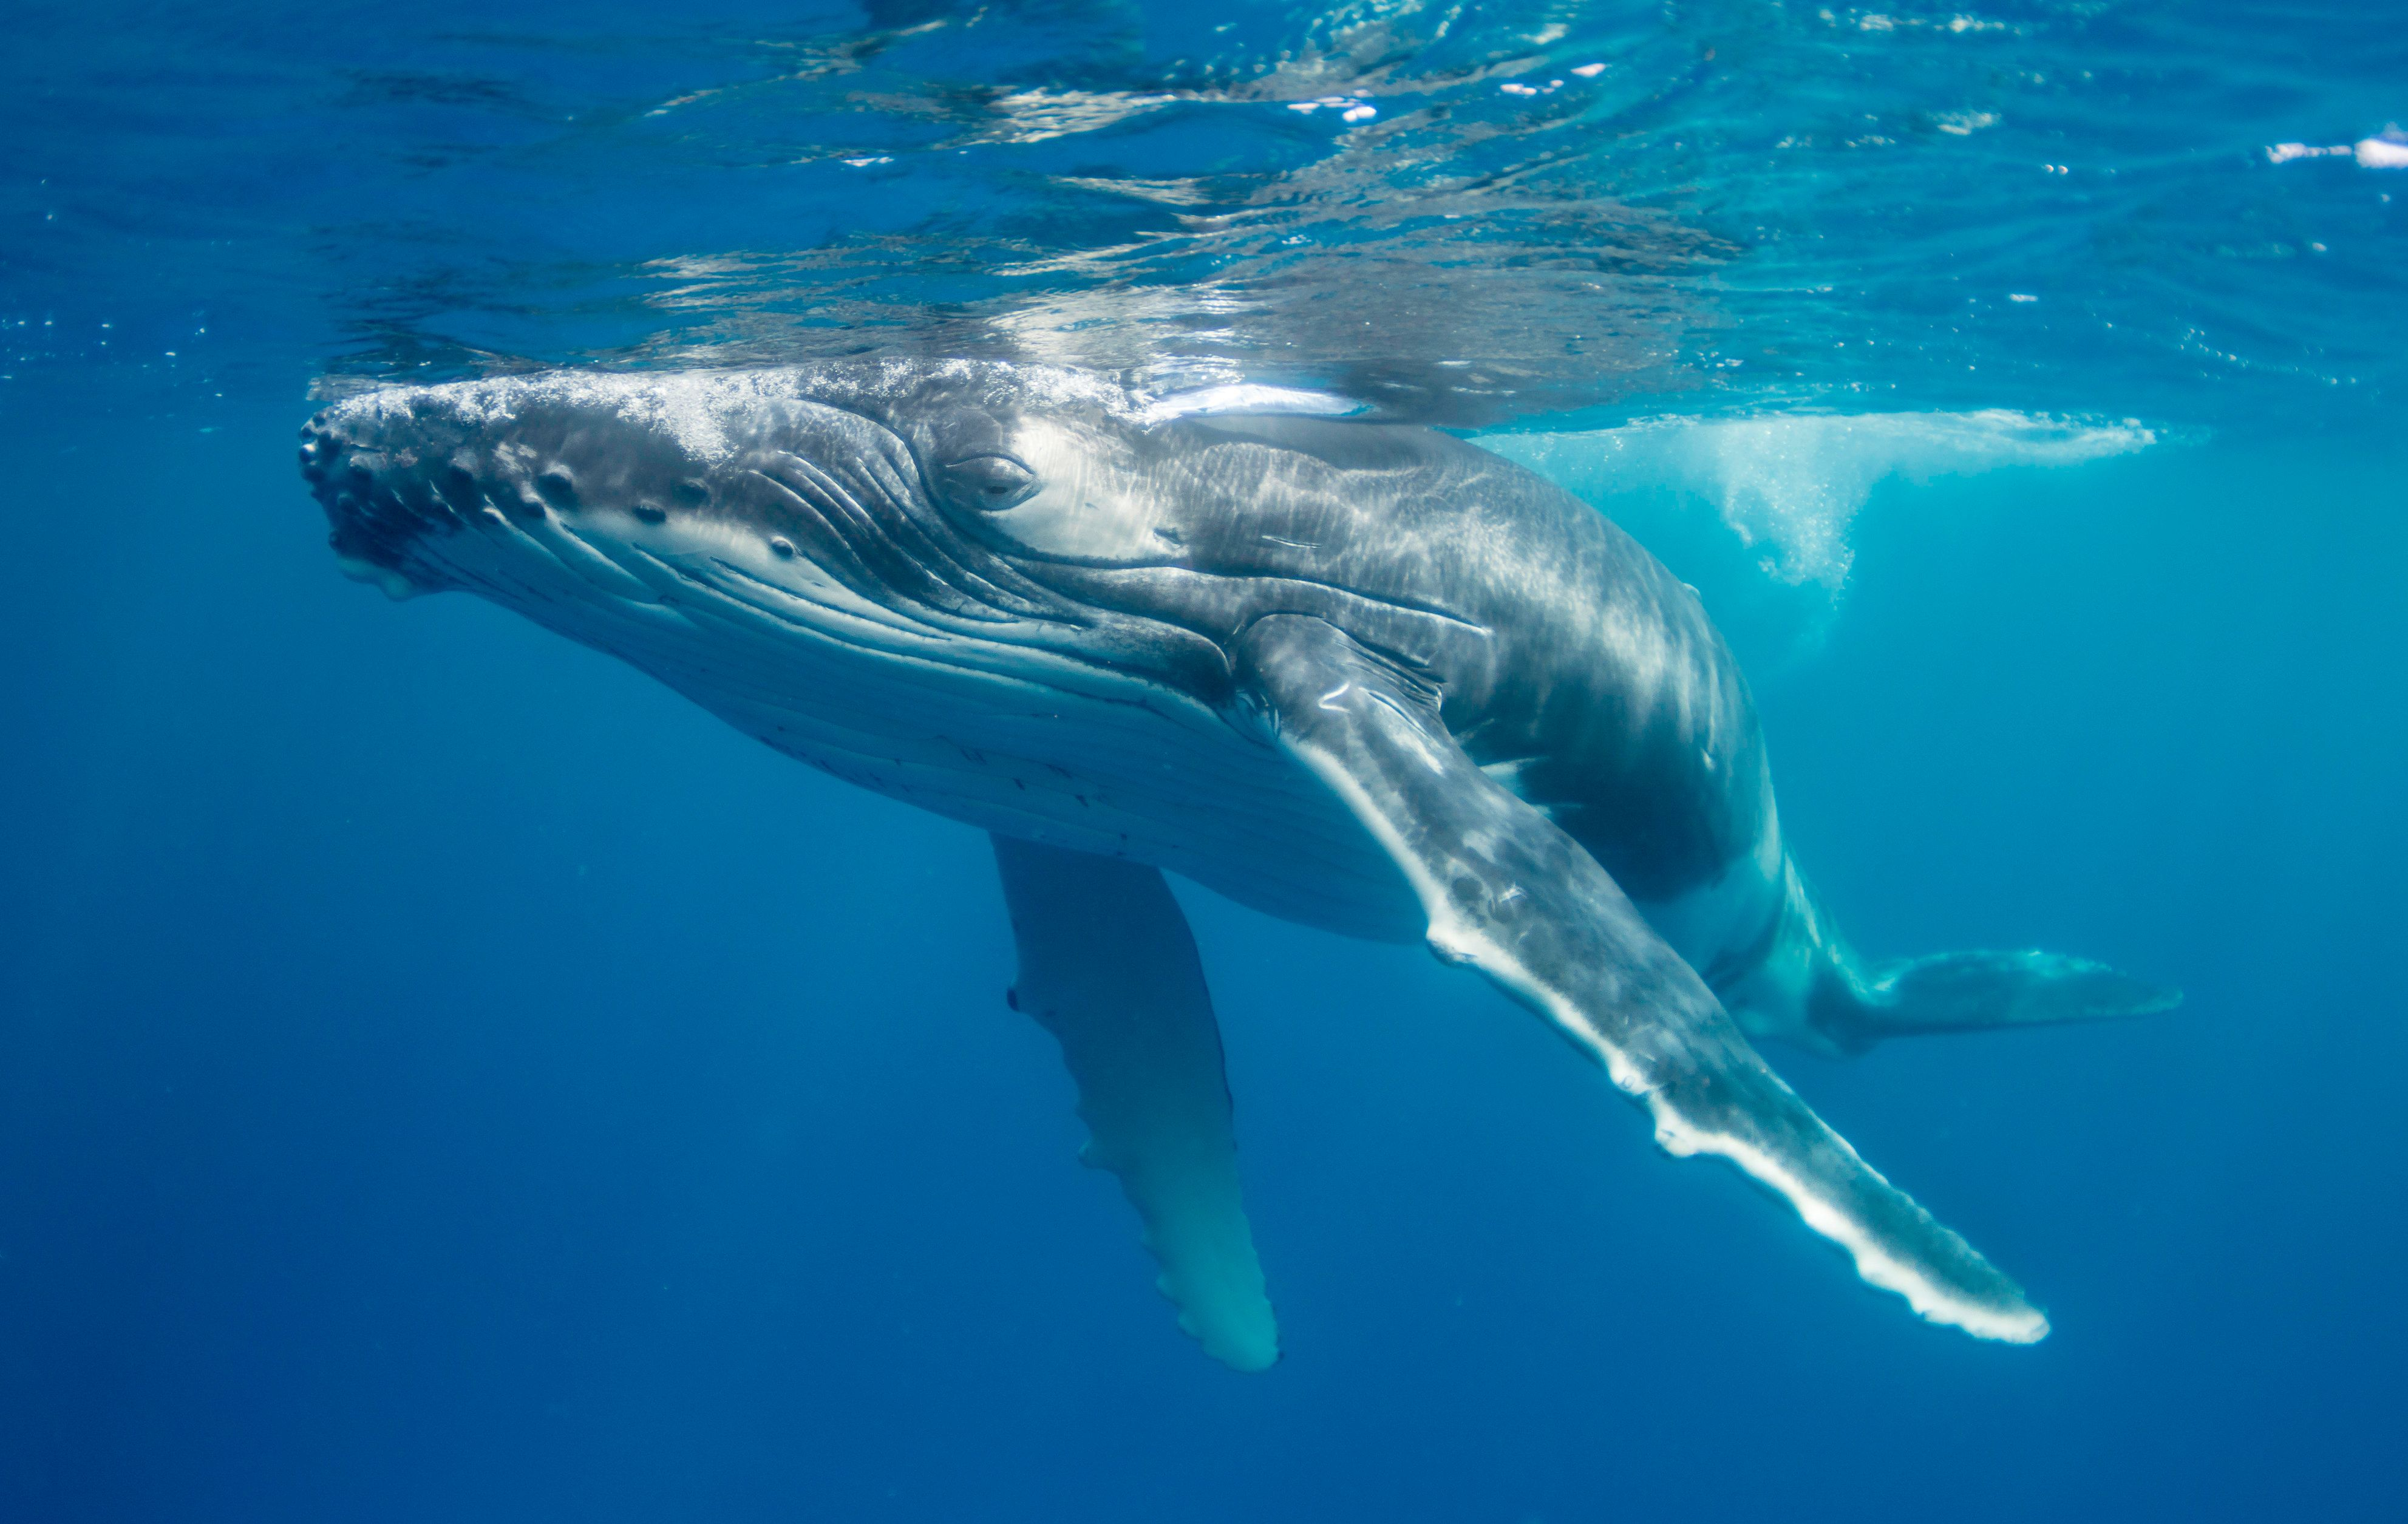 A baby humpback whale plays on the surface after coming up to breath, as it's mother keeps a close eye on things from below.